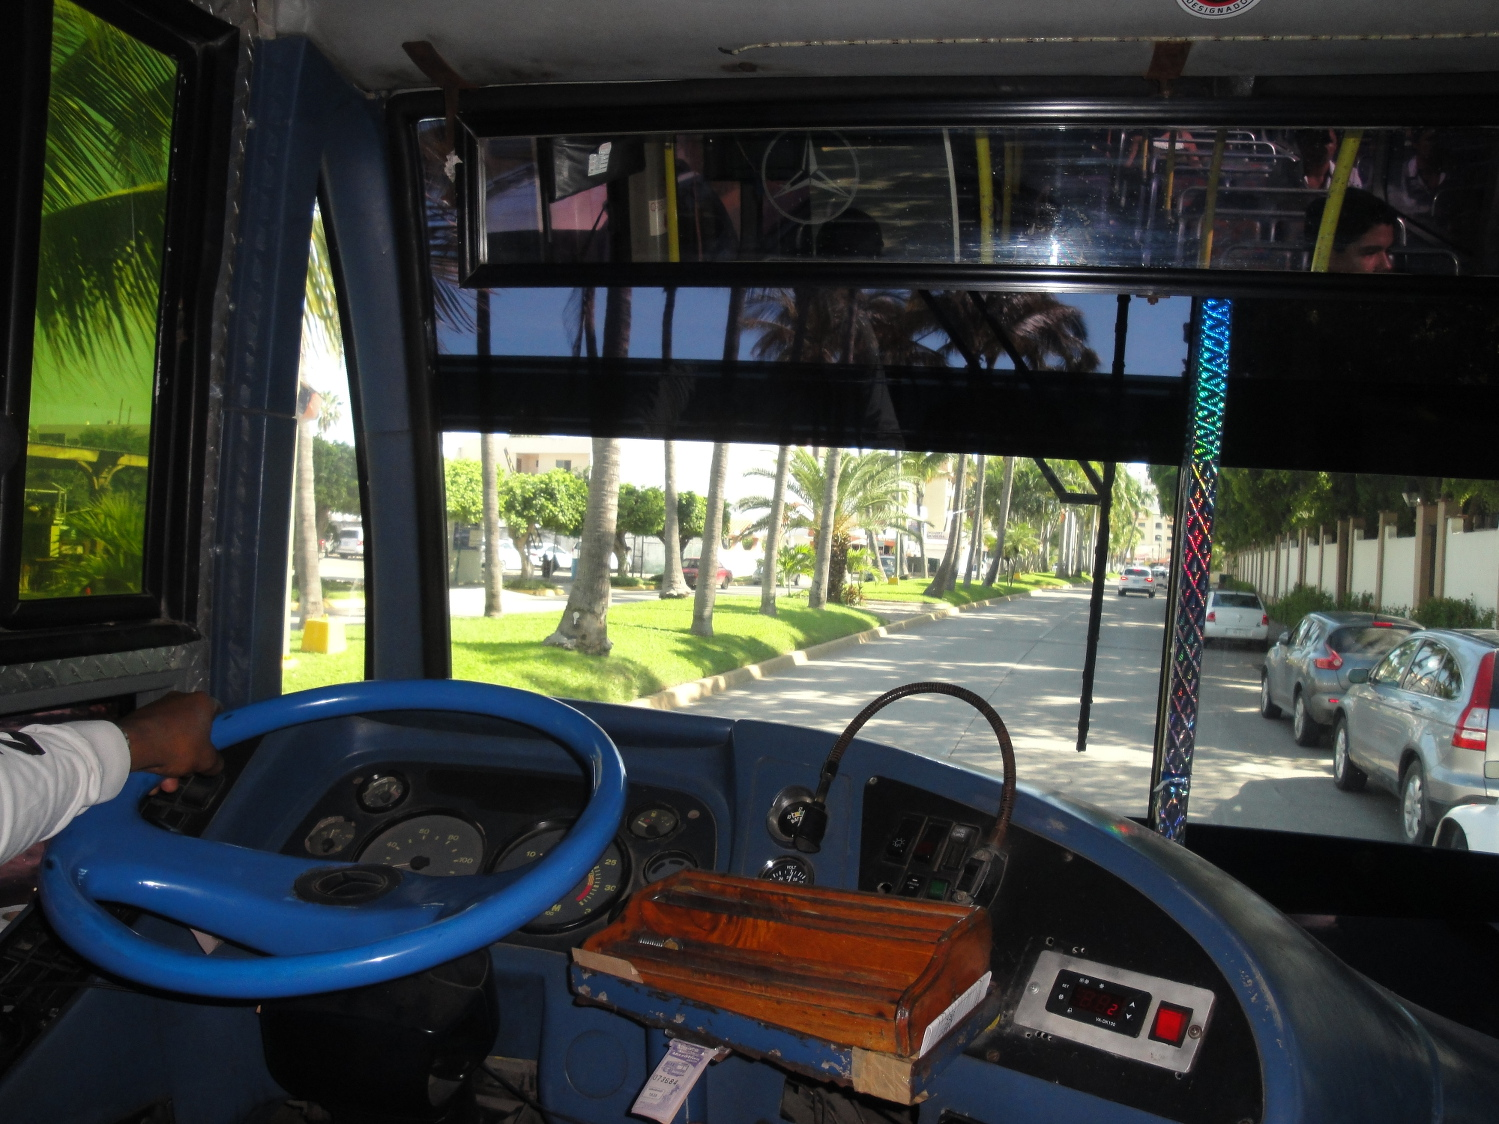 - Buses, taxis and water taxis are the popular modes of transportation for the part-time expat